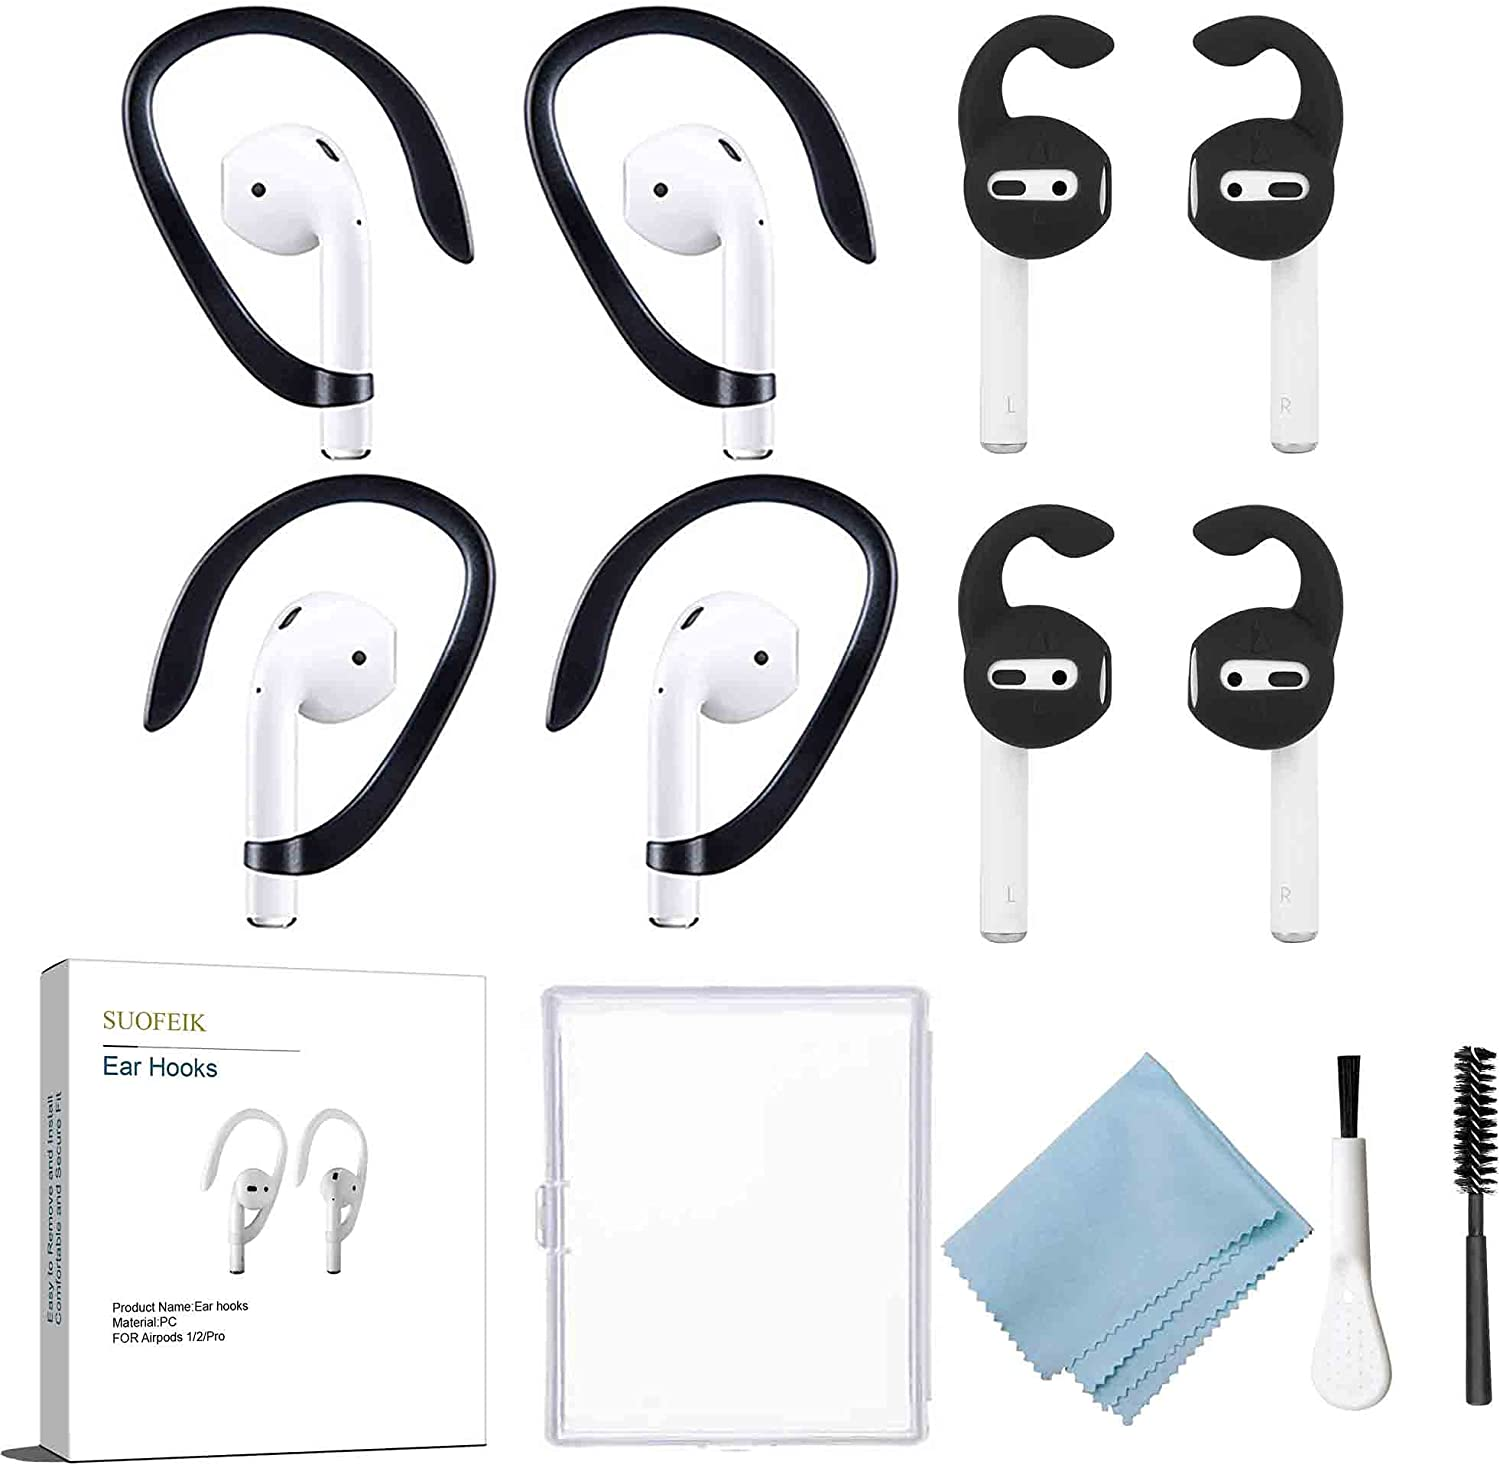 Ear Hooks Ear Cover Designed for Apple AirPods 1 and 2,Accessories for Running, Jogging, Cycling, Gym (Black)